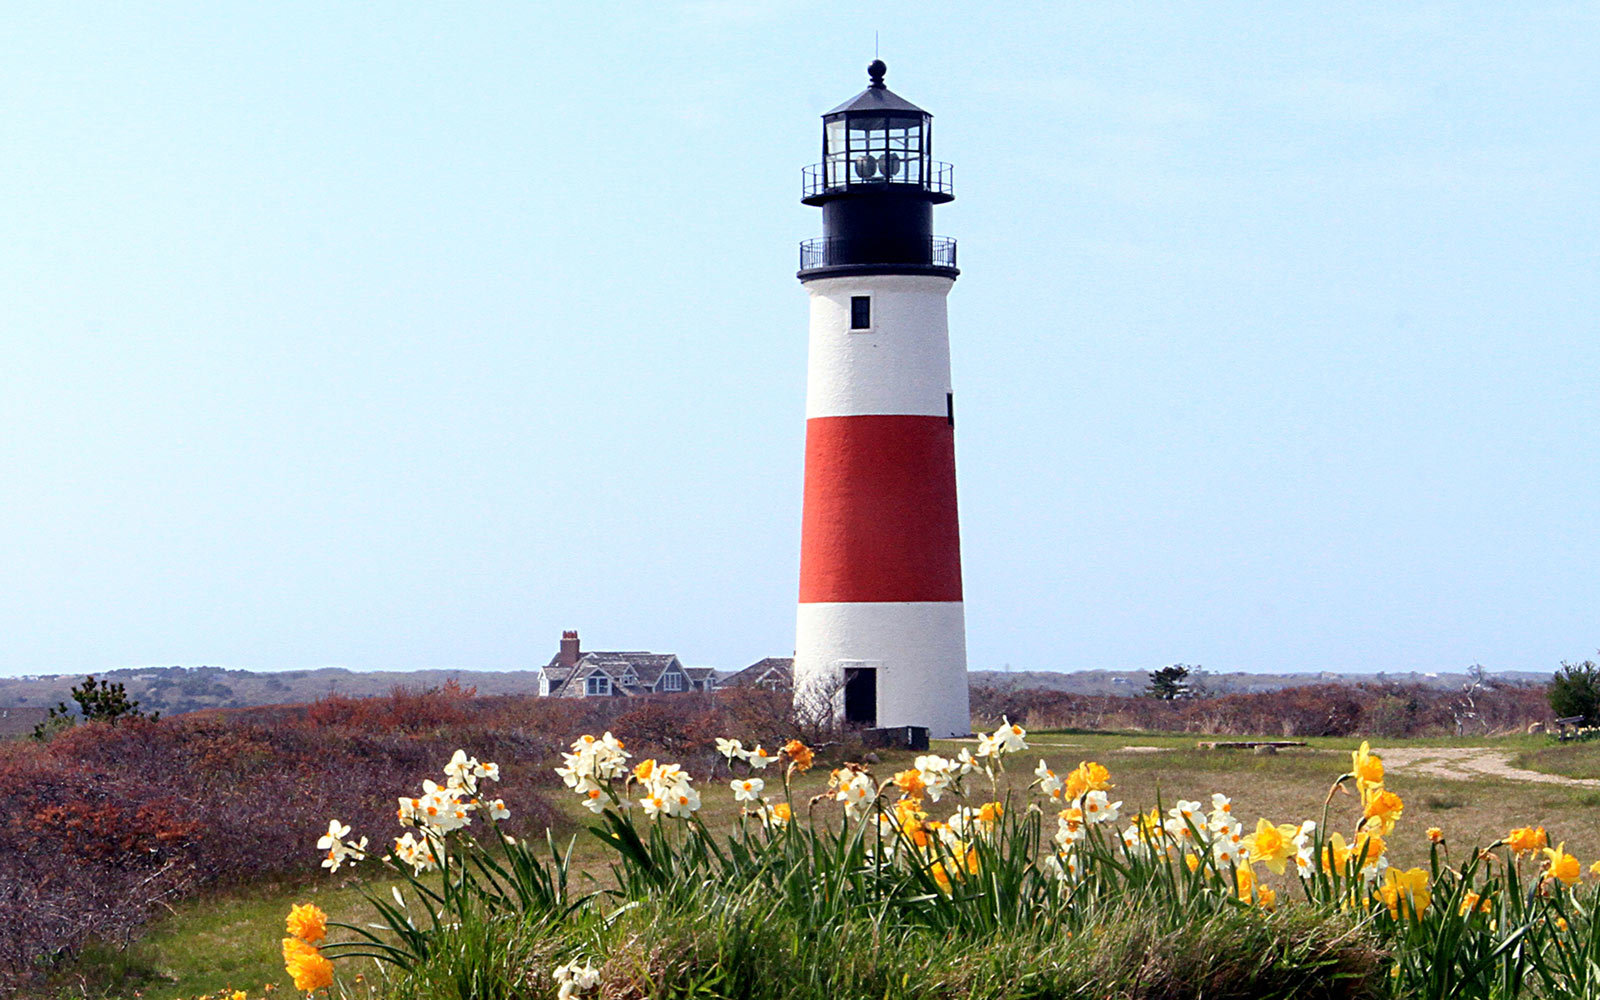 Daffodil Festival on Nantucket, Massachusetts